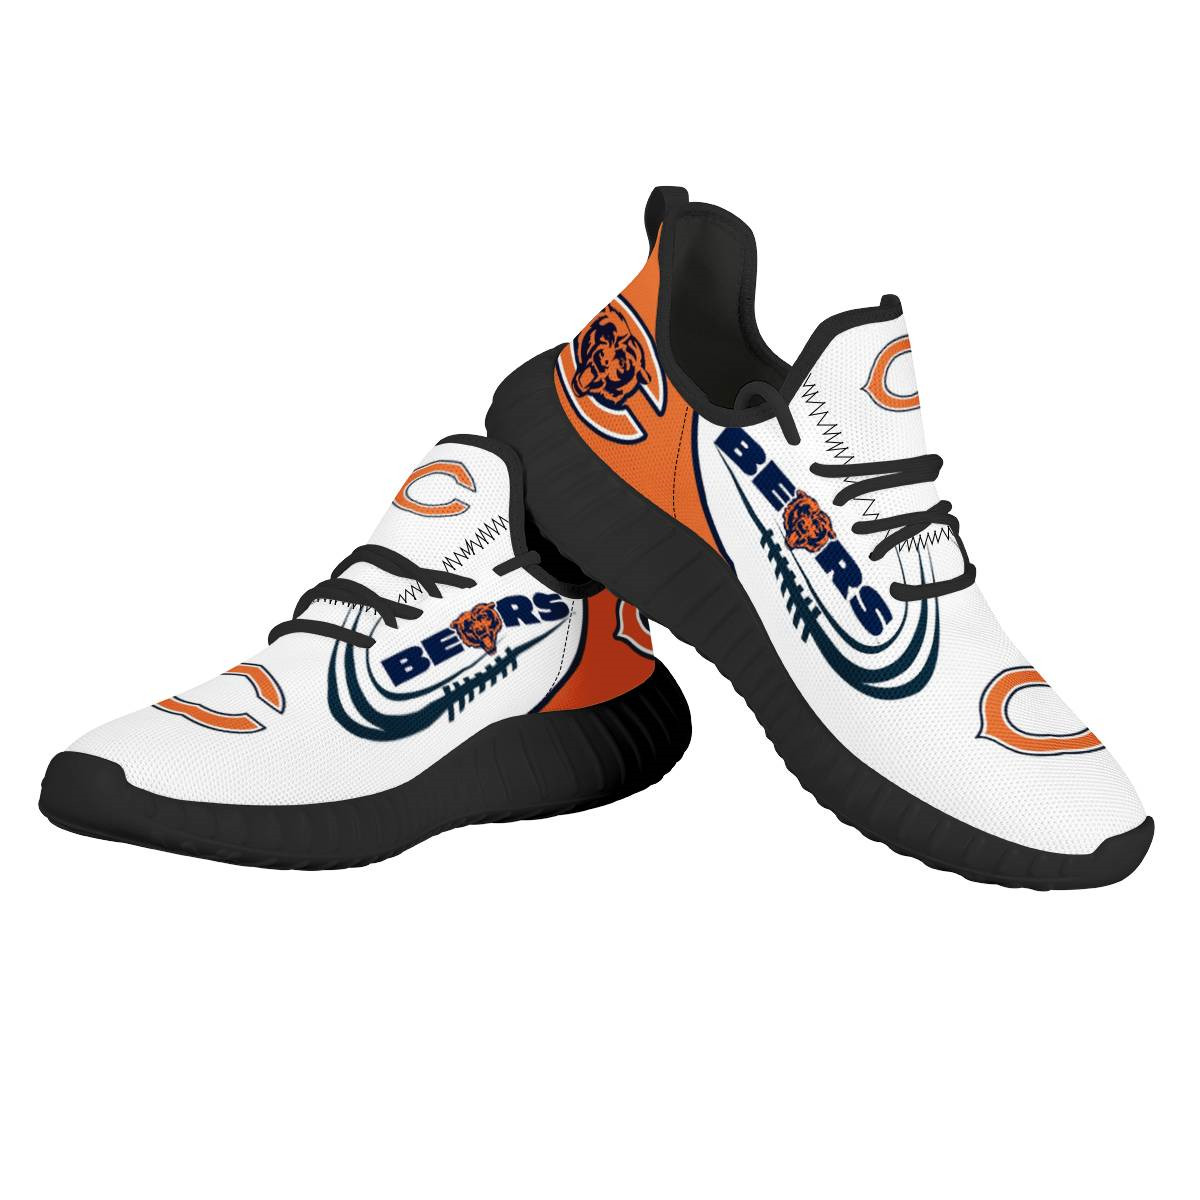 Women's NFL Chicago Bears Lightweight Running Shoes 019